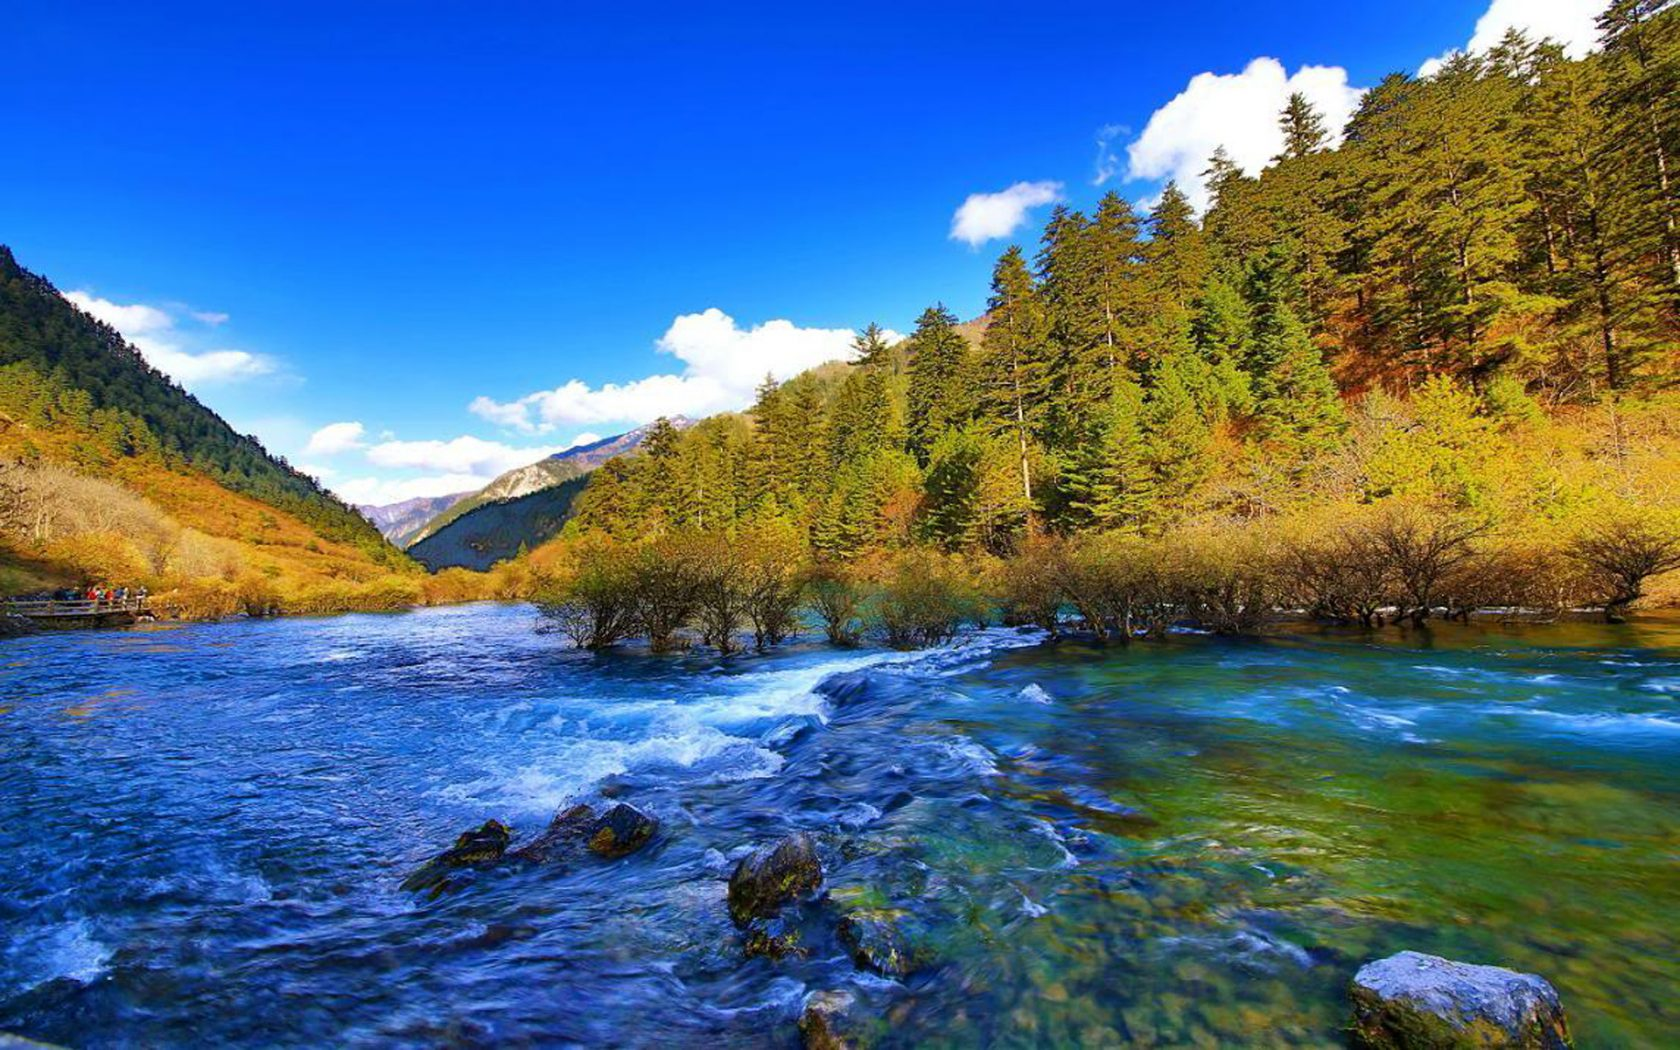 Moon Wallpaper Hd Jiuzhaigou Valley A Spectacular Dish That Awesome To